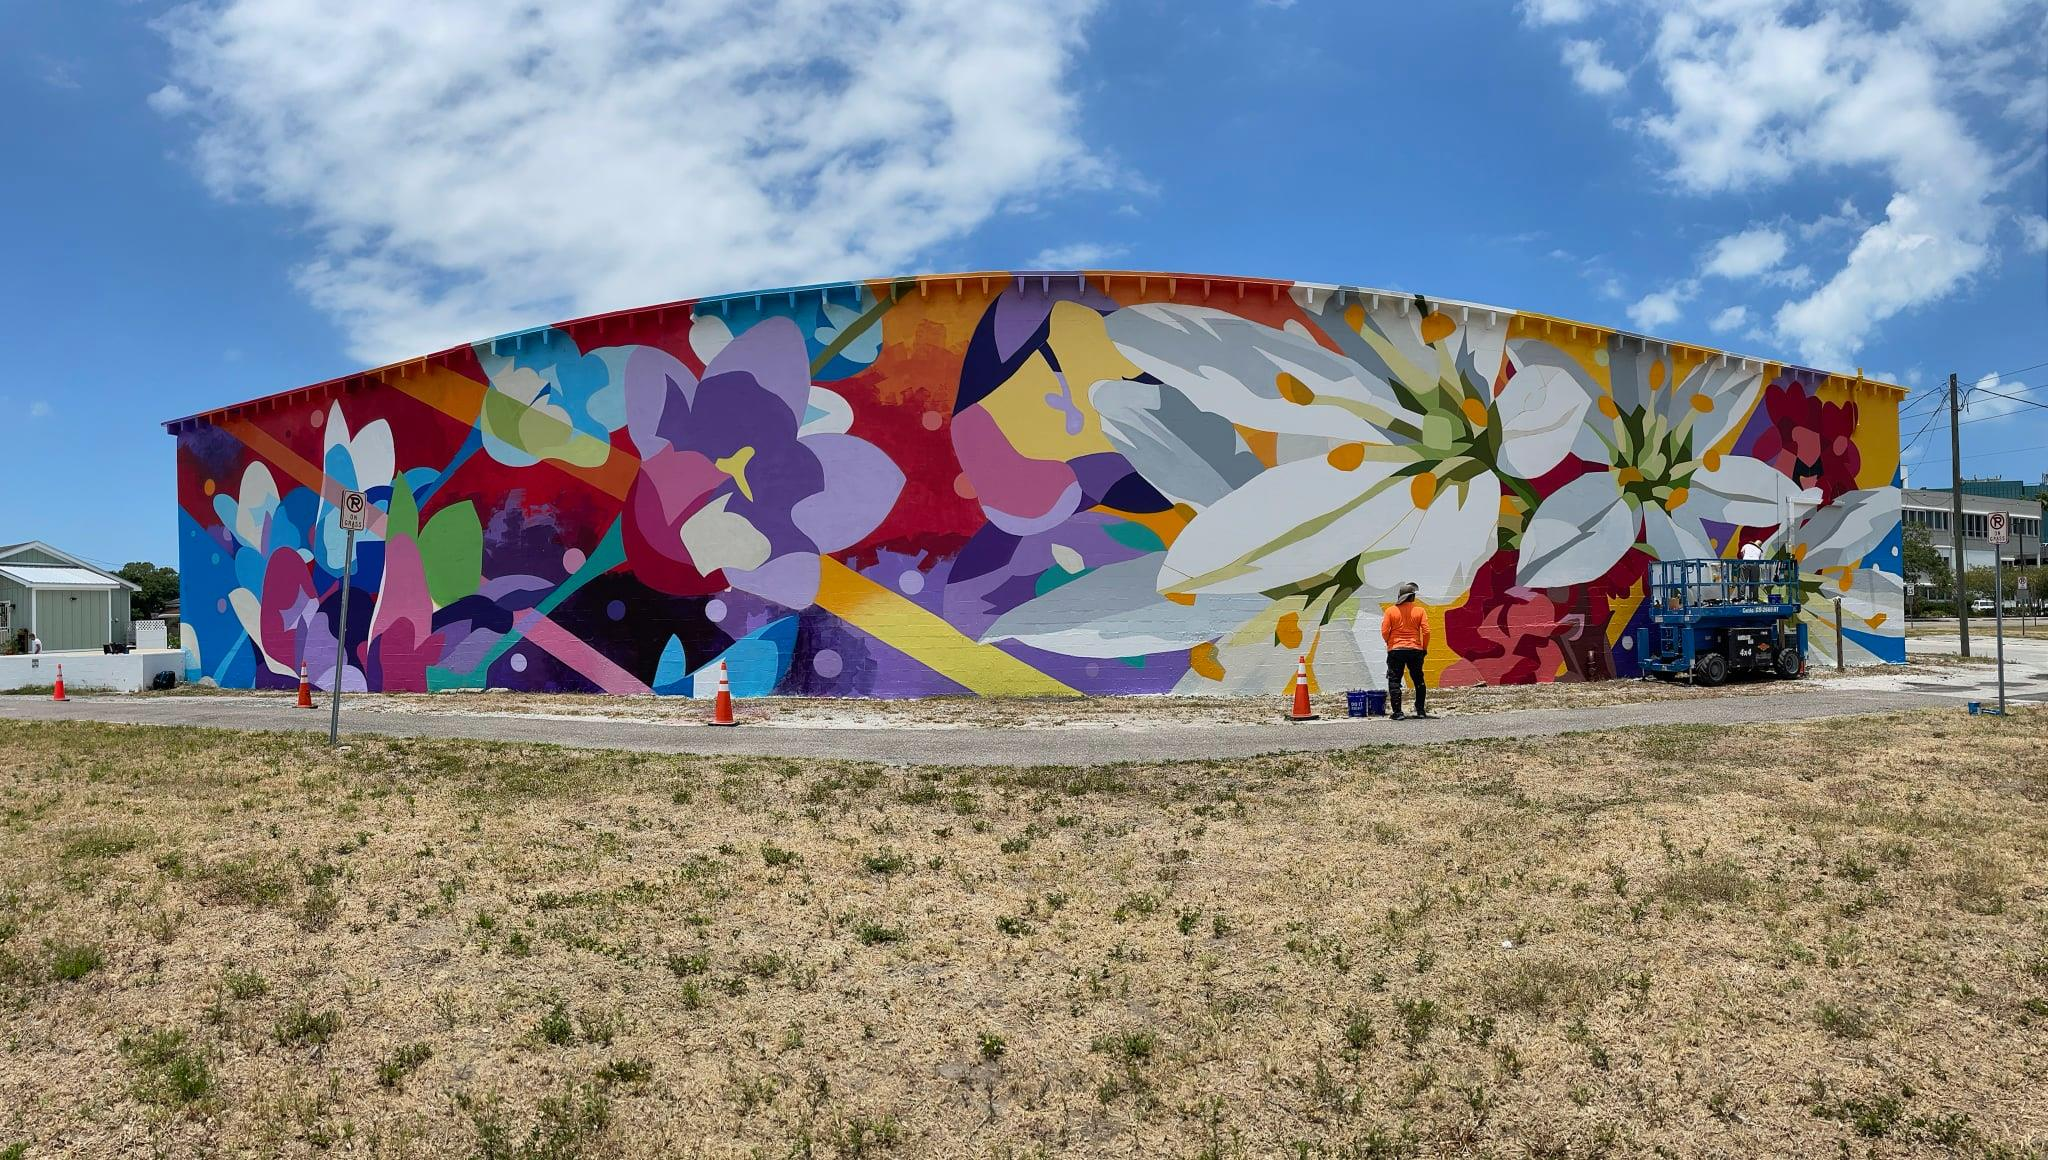 a colorful floral mural adorns the side of a building under a blue, lightly cloudy sky